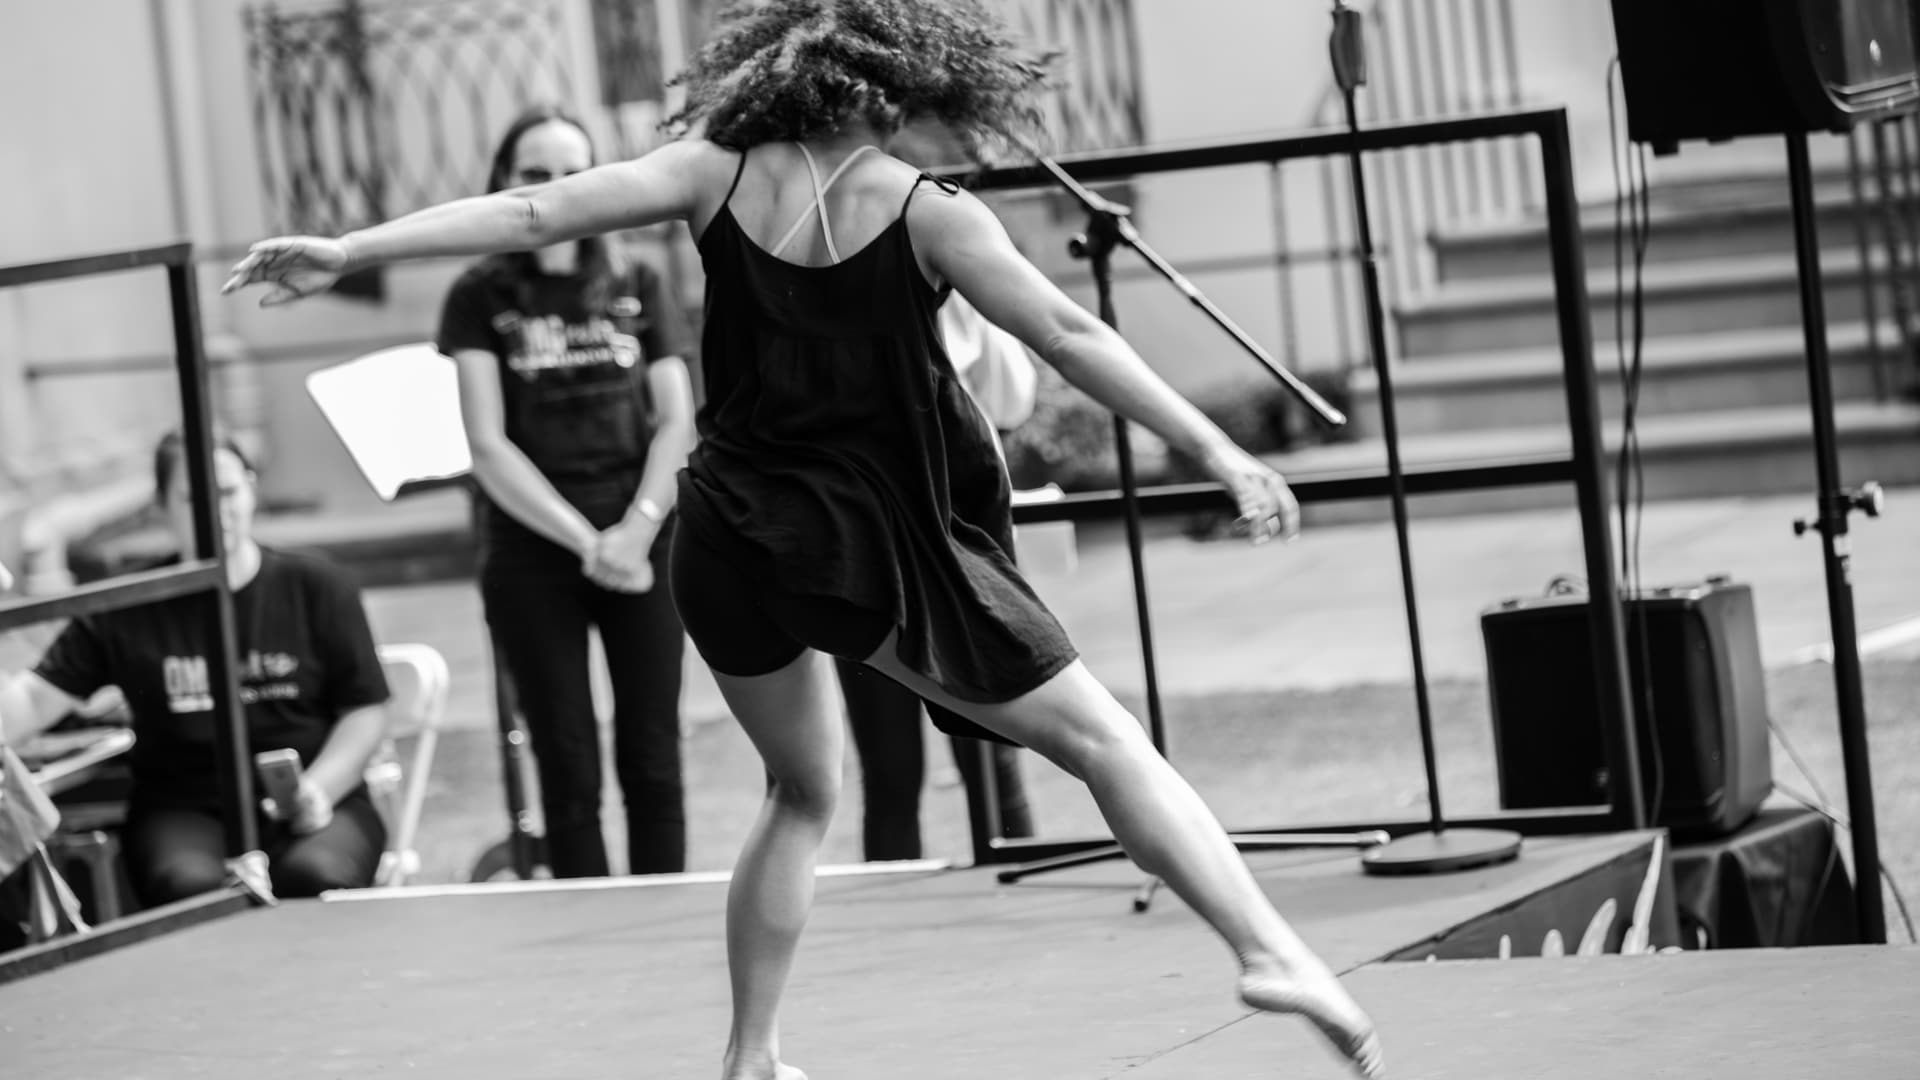 A dancer with long curly hair, wearing a long black sleeveless top and shorts